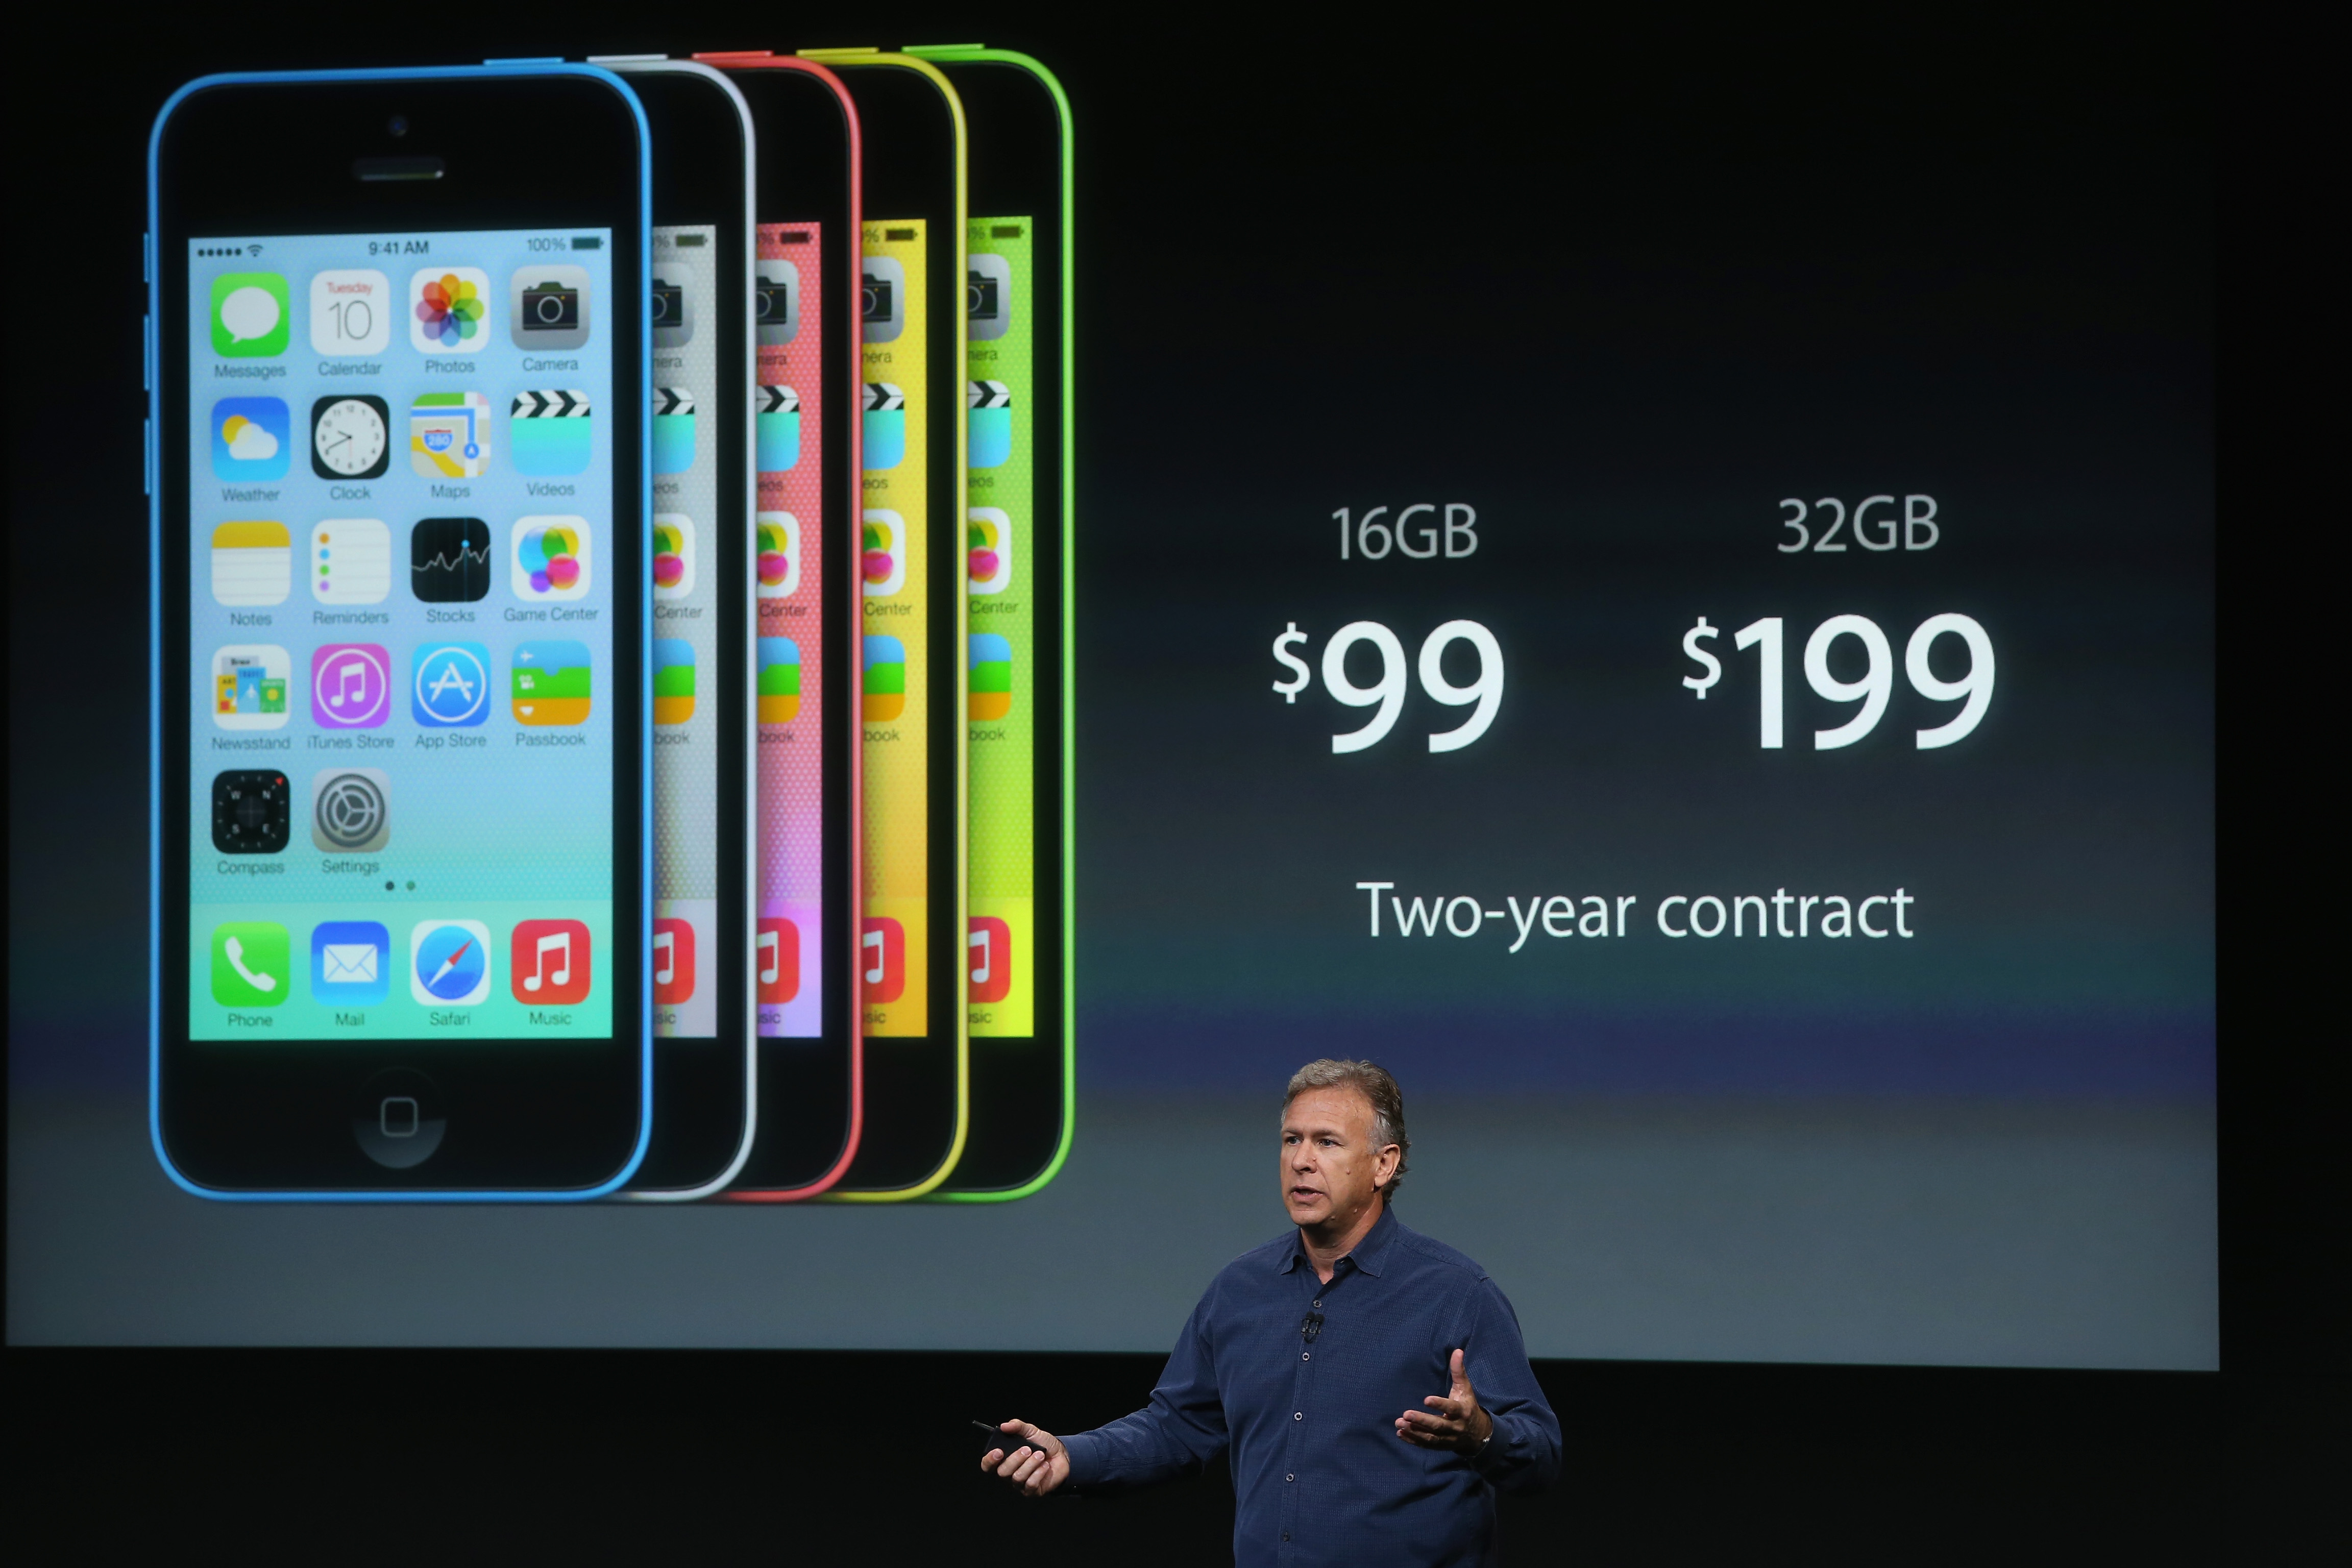 180222598 Apple launches iPhone 5c with 4 inch Retina display